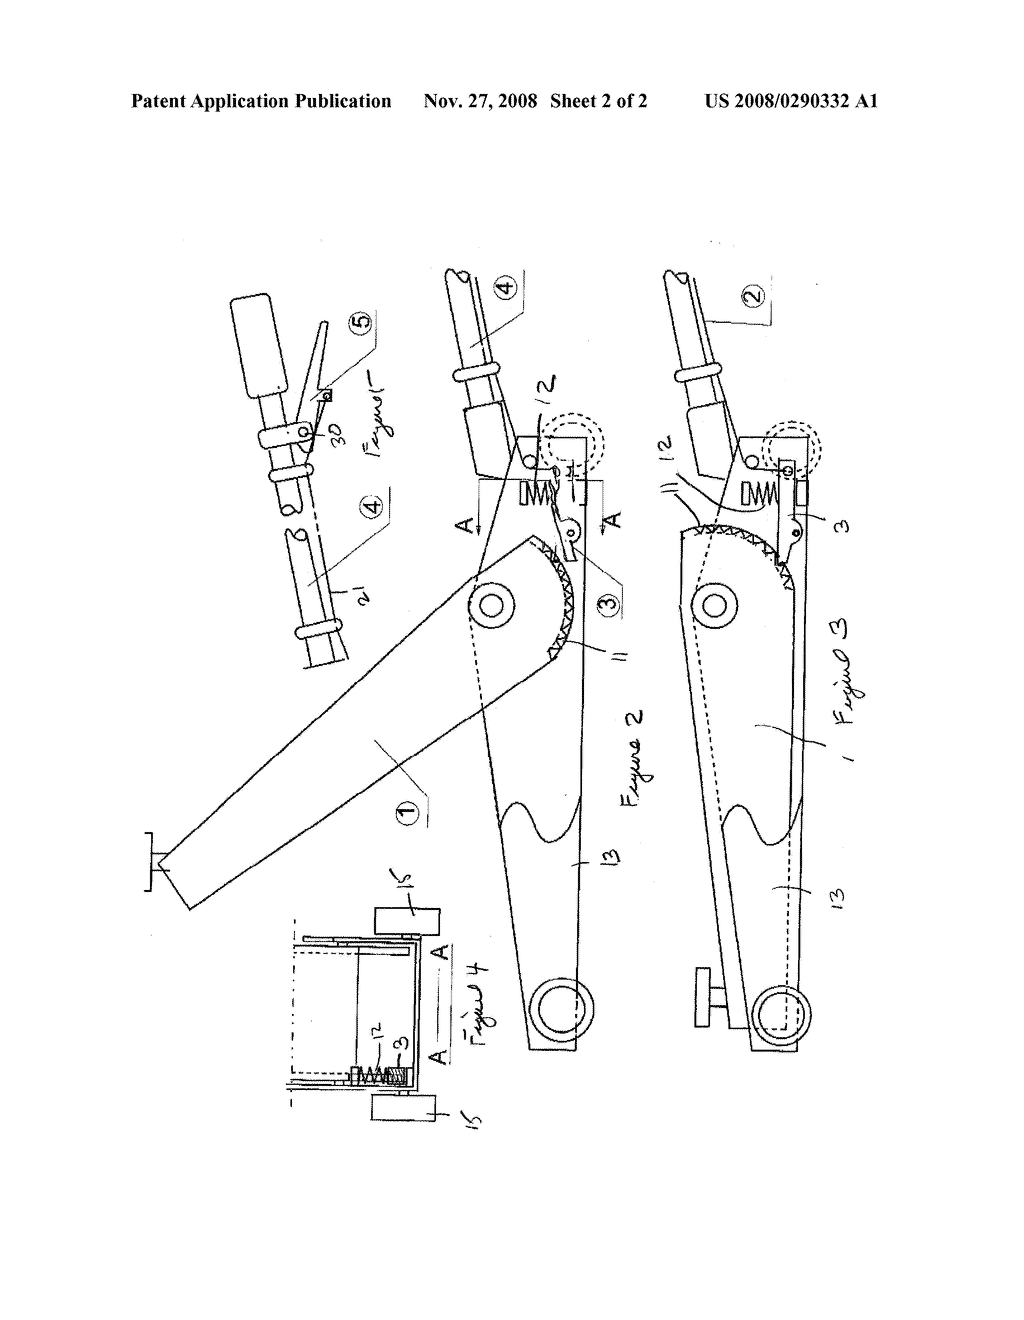 floor jack jack stand combined diagram schematic and image 03 rh patentsencyclopedia com Blackhawk Floor Jack Parts Diagram hydraulic floor jack schematic